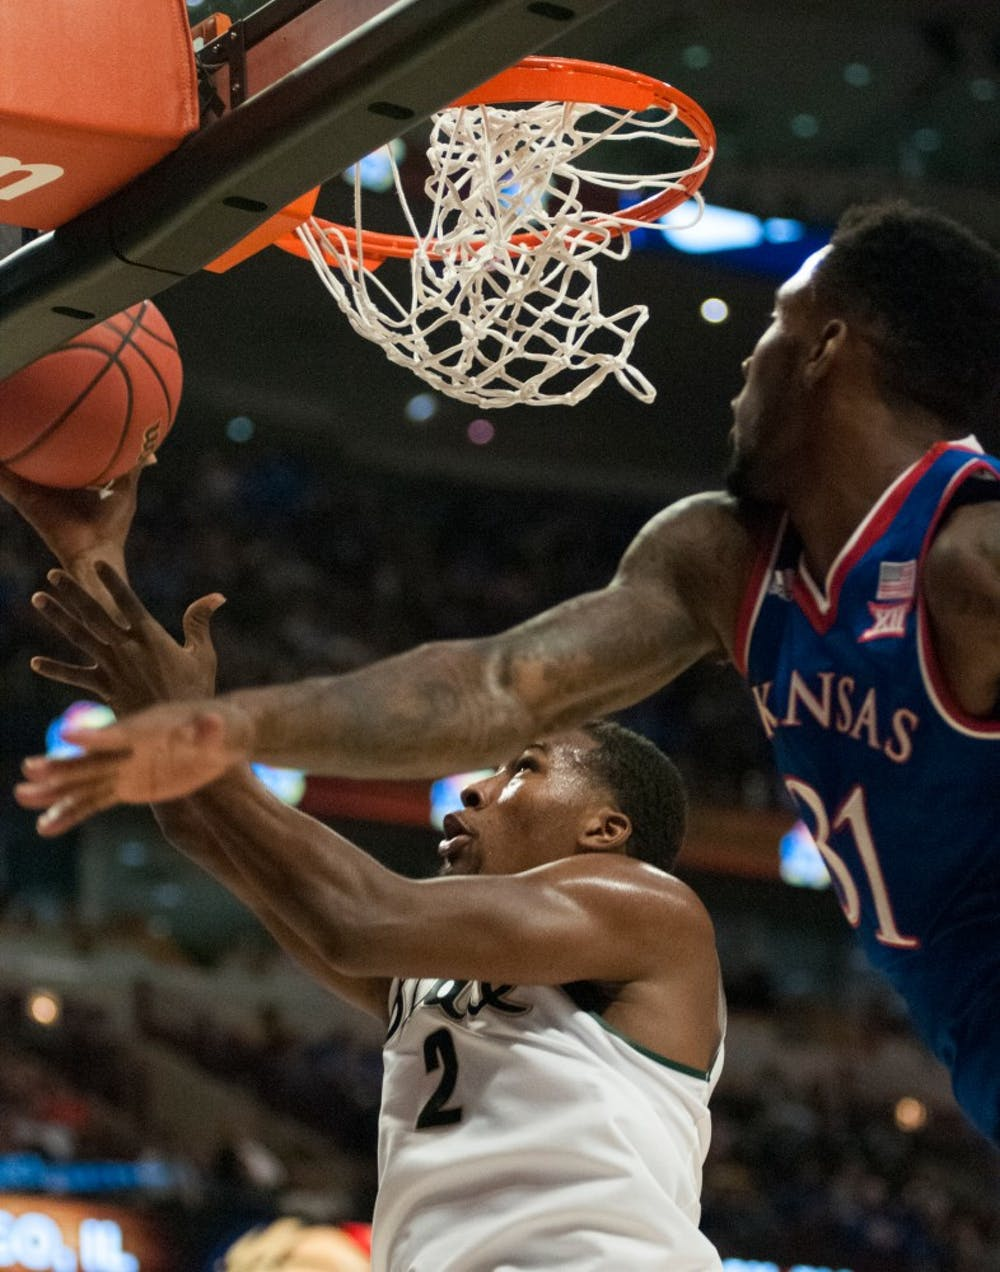 <p>Sophomore guard Javon Bess goes for the lay-up as Kansas forward Jamari Traylor defends on Nov. 17, 2015 at United Center in Chicago during the Champions Classic. The Spartans defeated the Jayhawks, 79-73.</p>